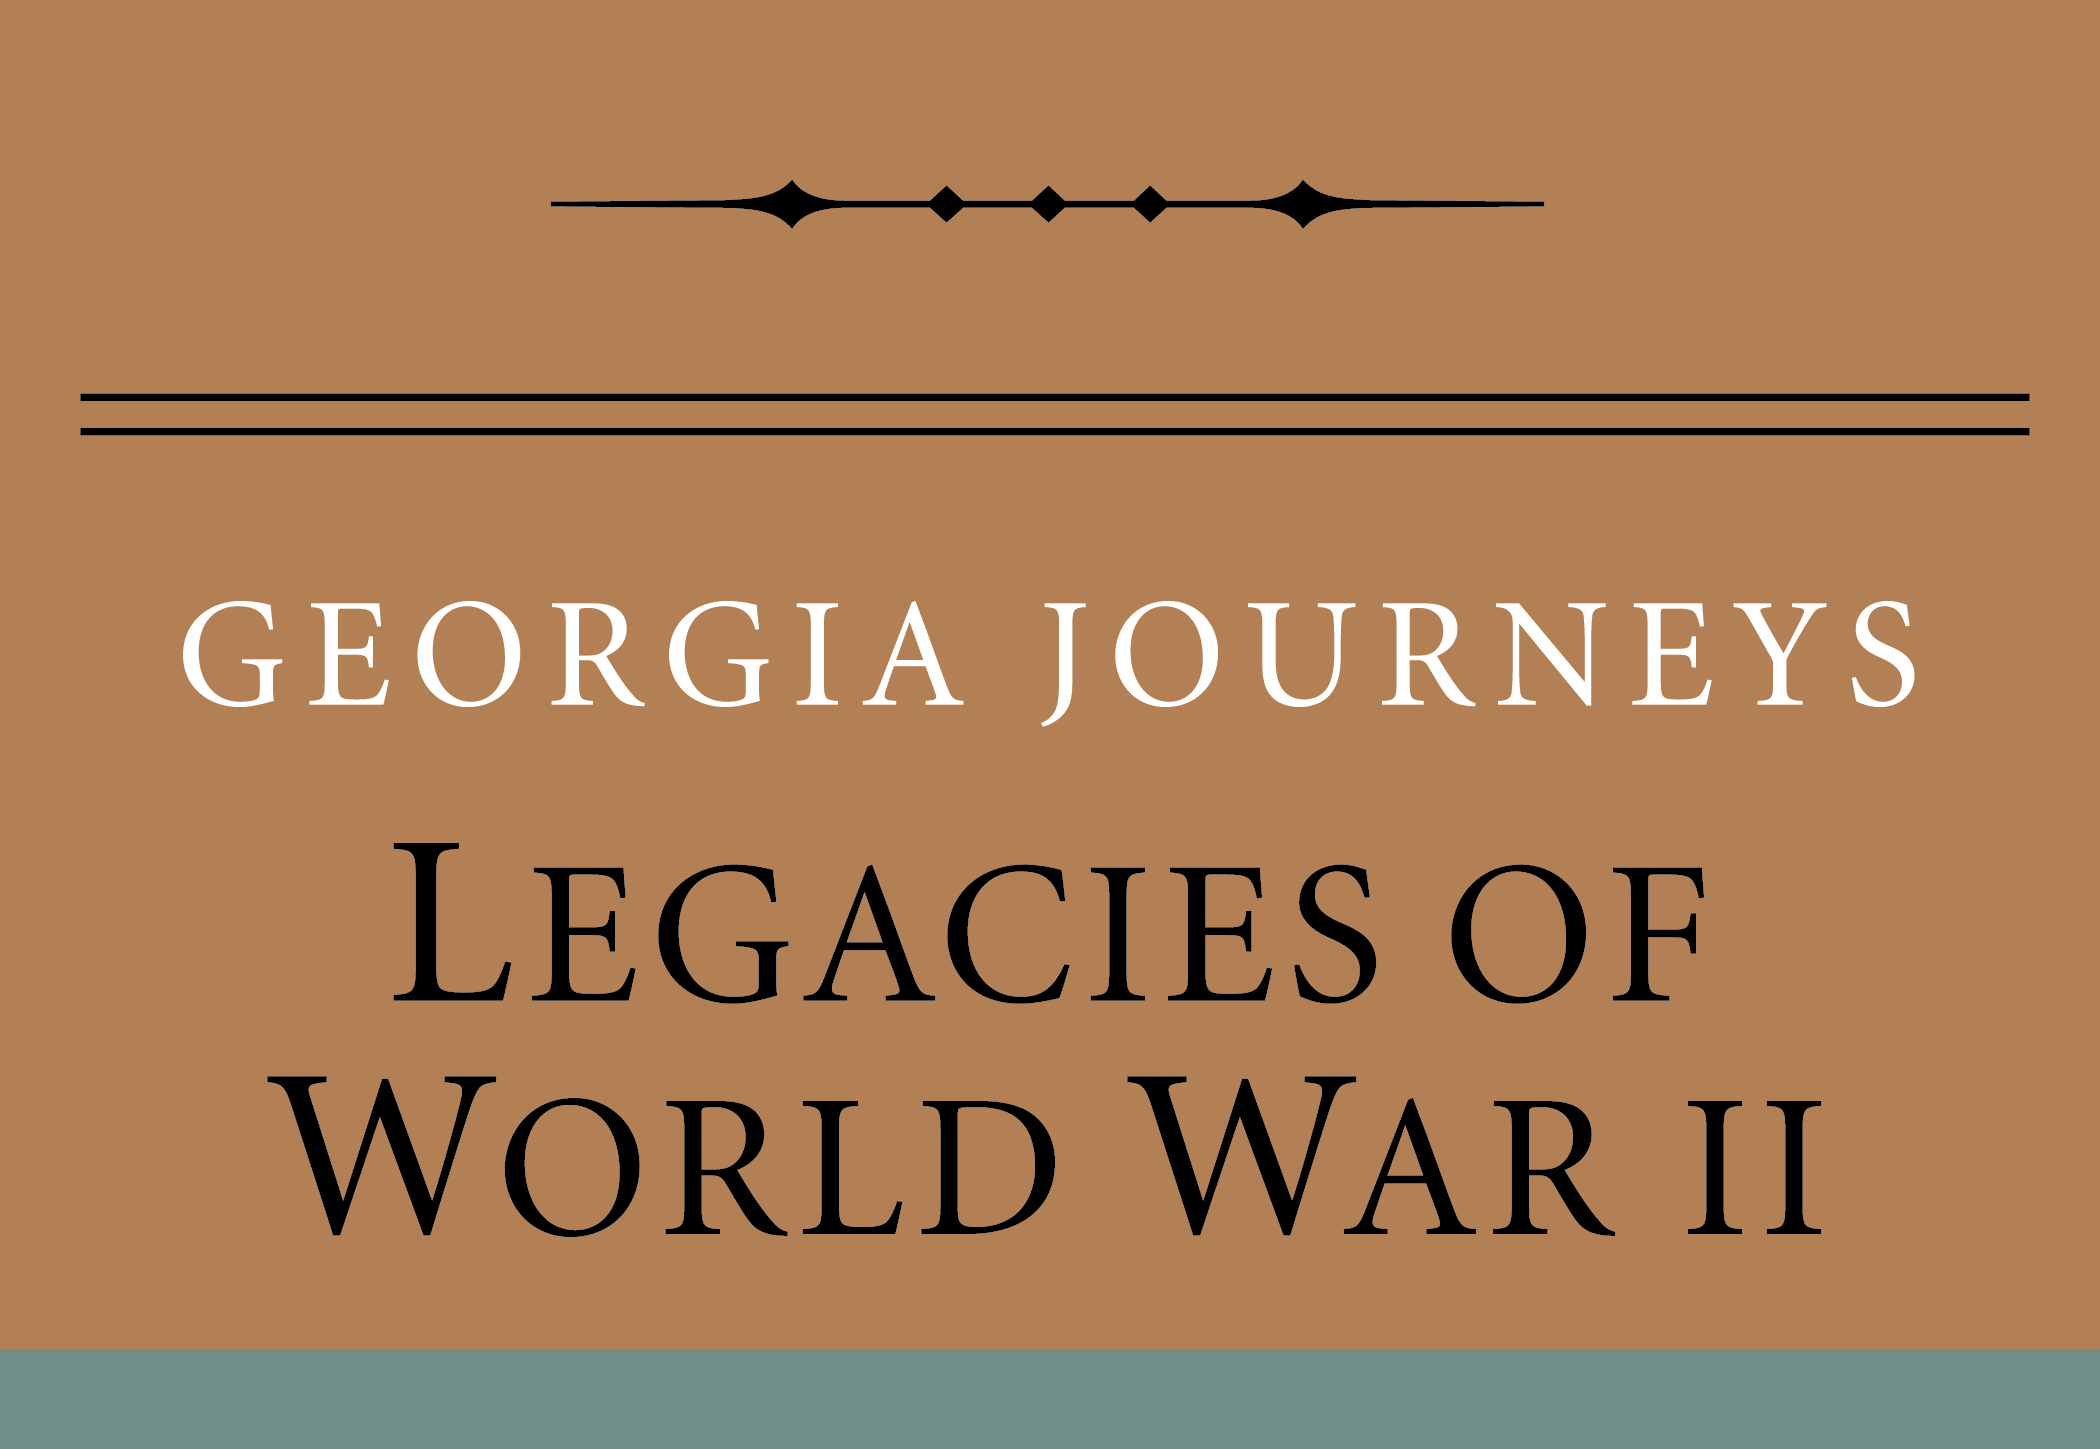 Georgia Journeys